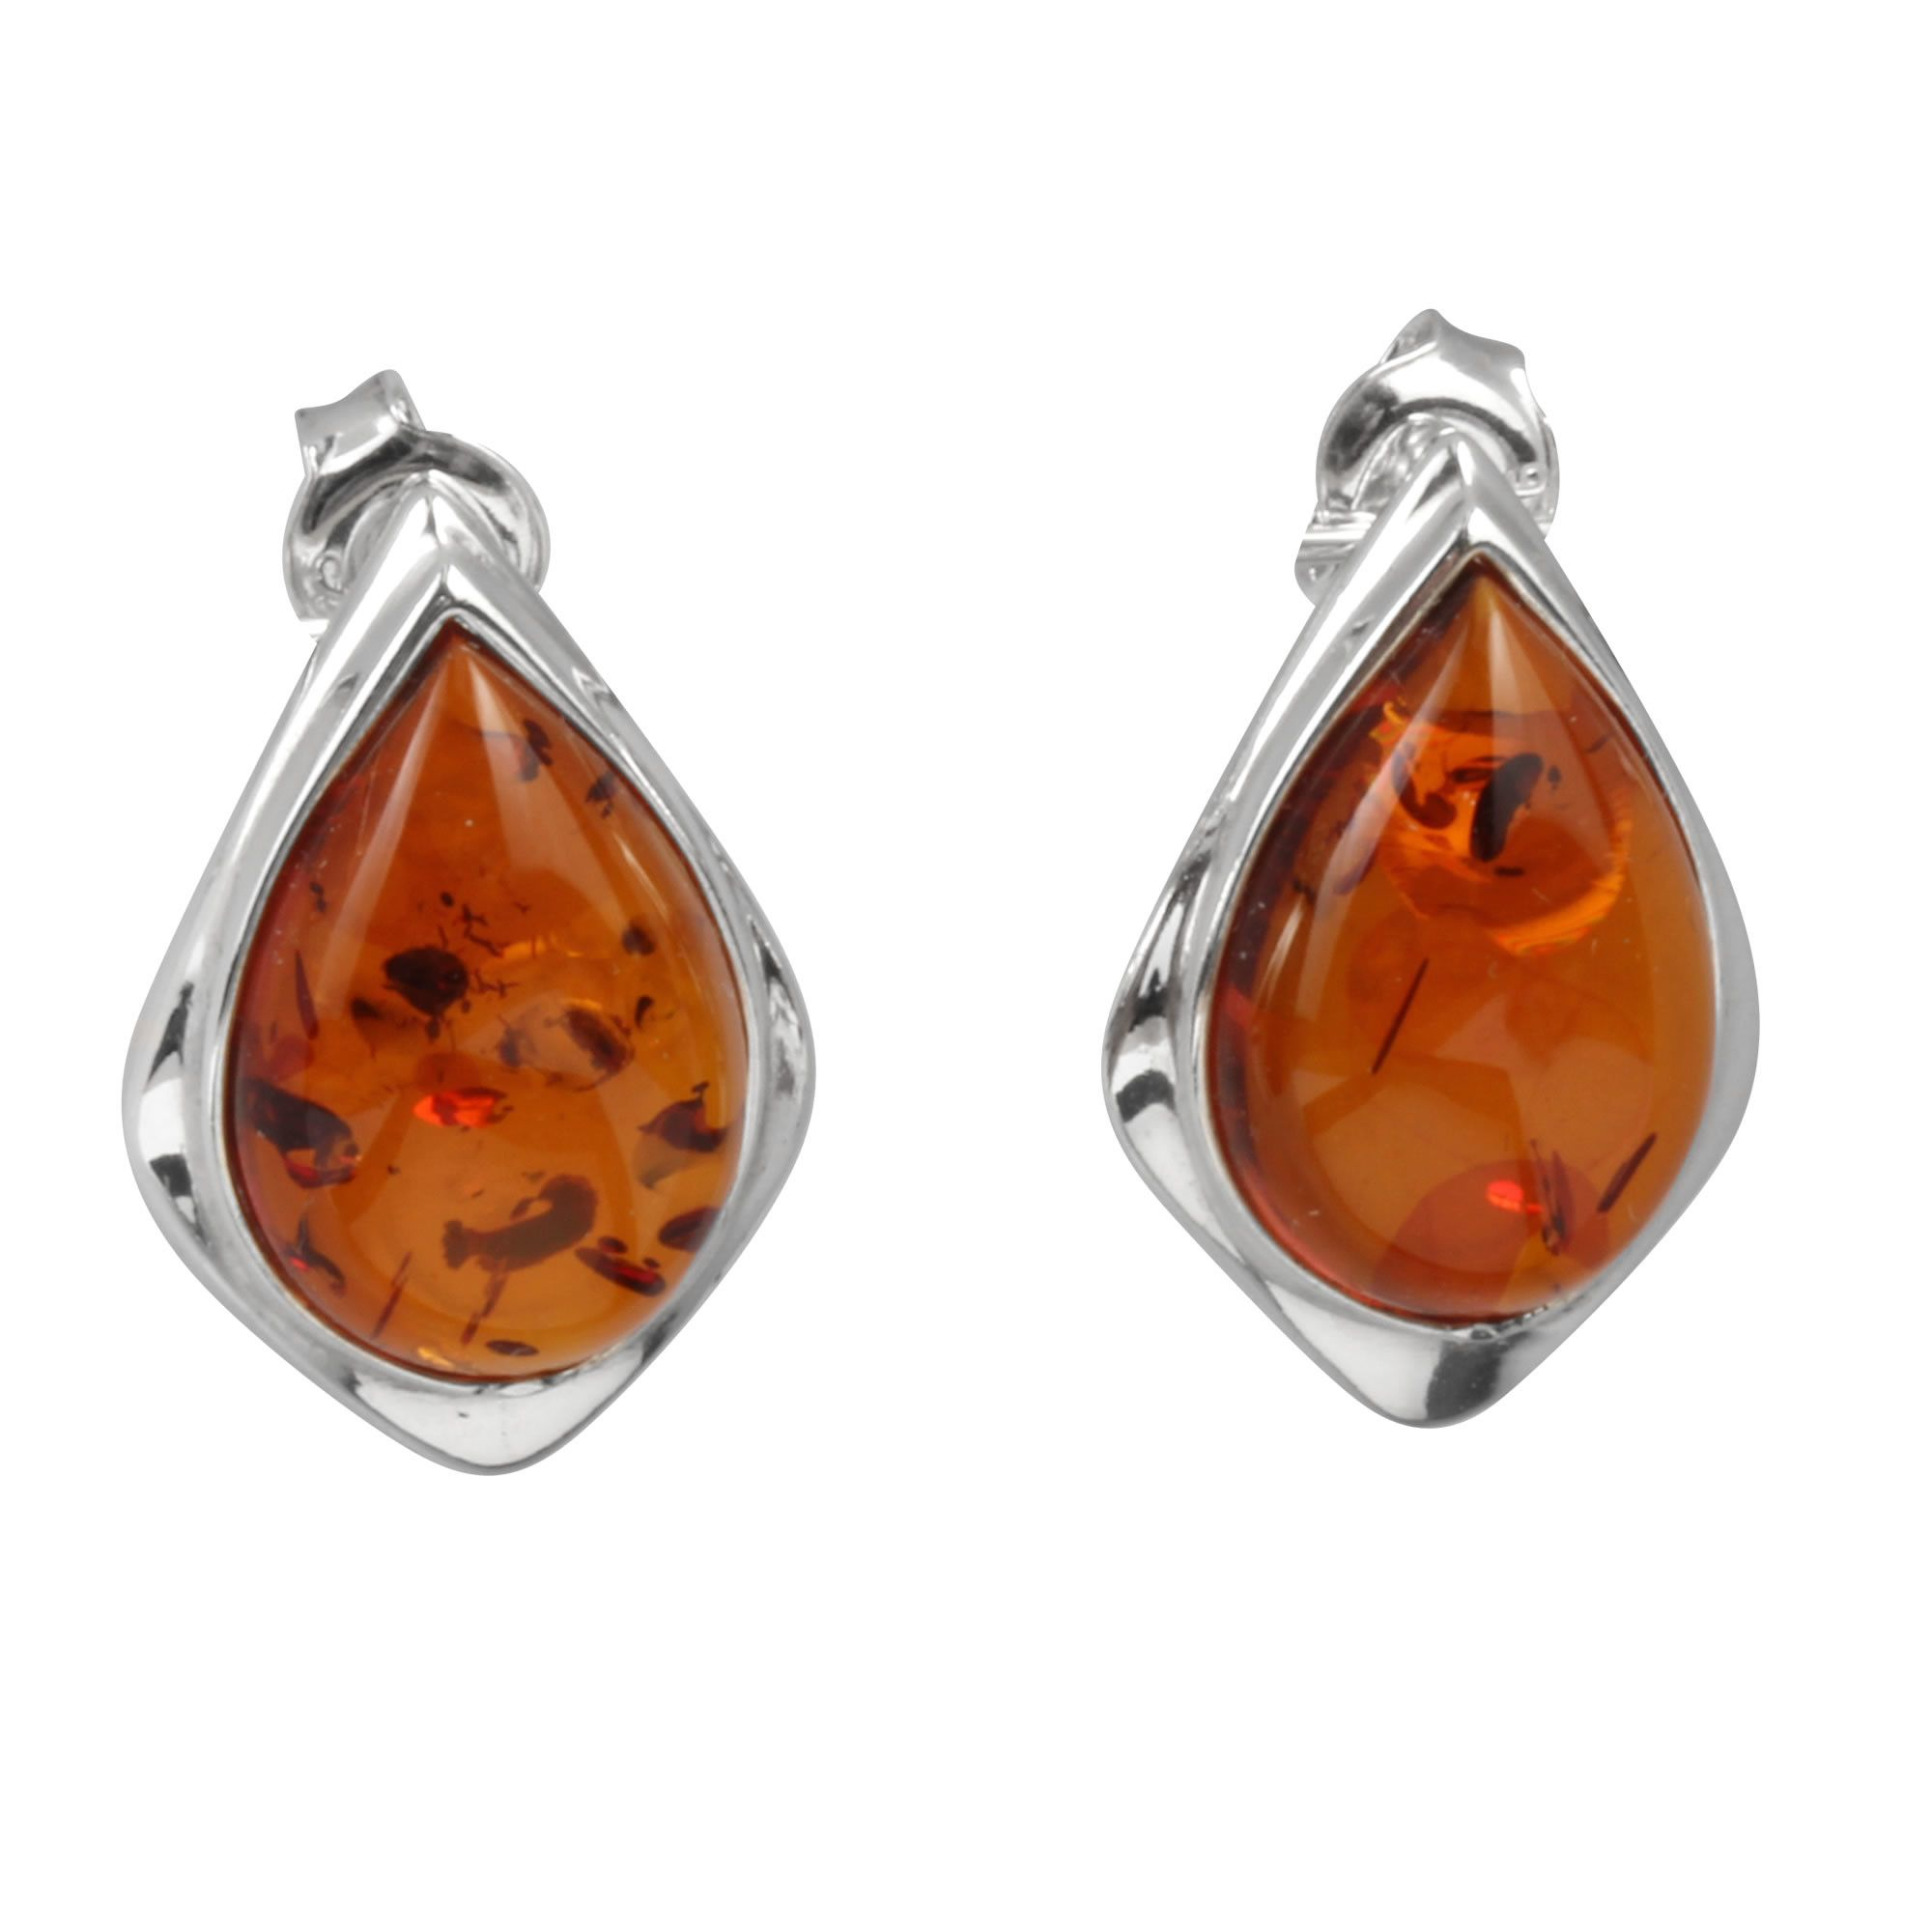 Baltic Honey Amber and Sterling Silver Tear-drop Earrings 73vbfJUA